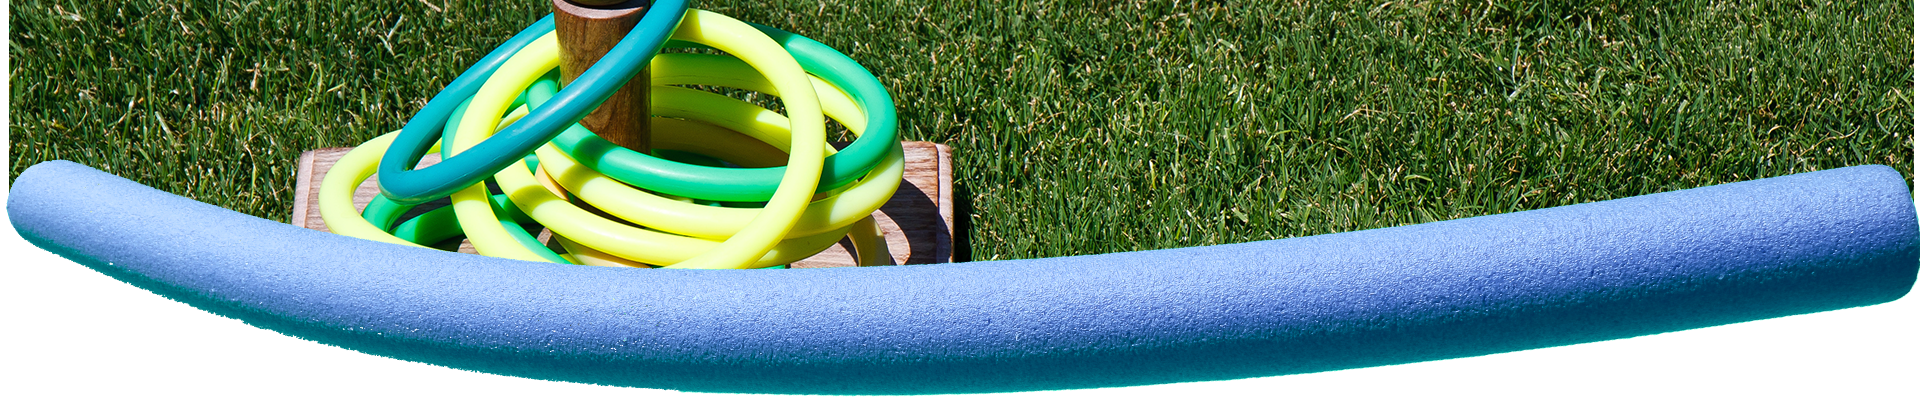 ring-toss-and-blue-pool-noodle